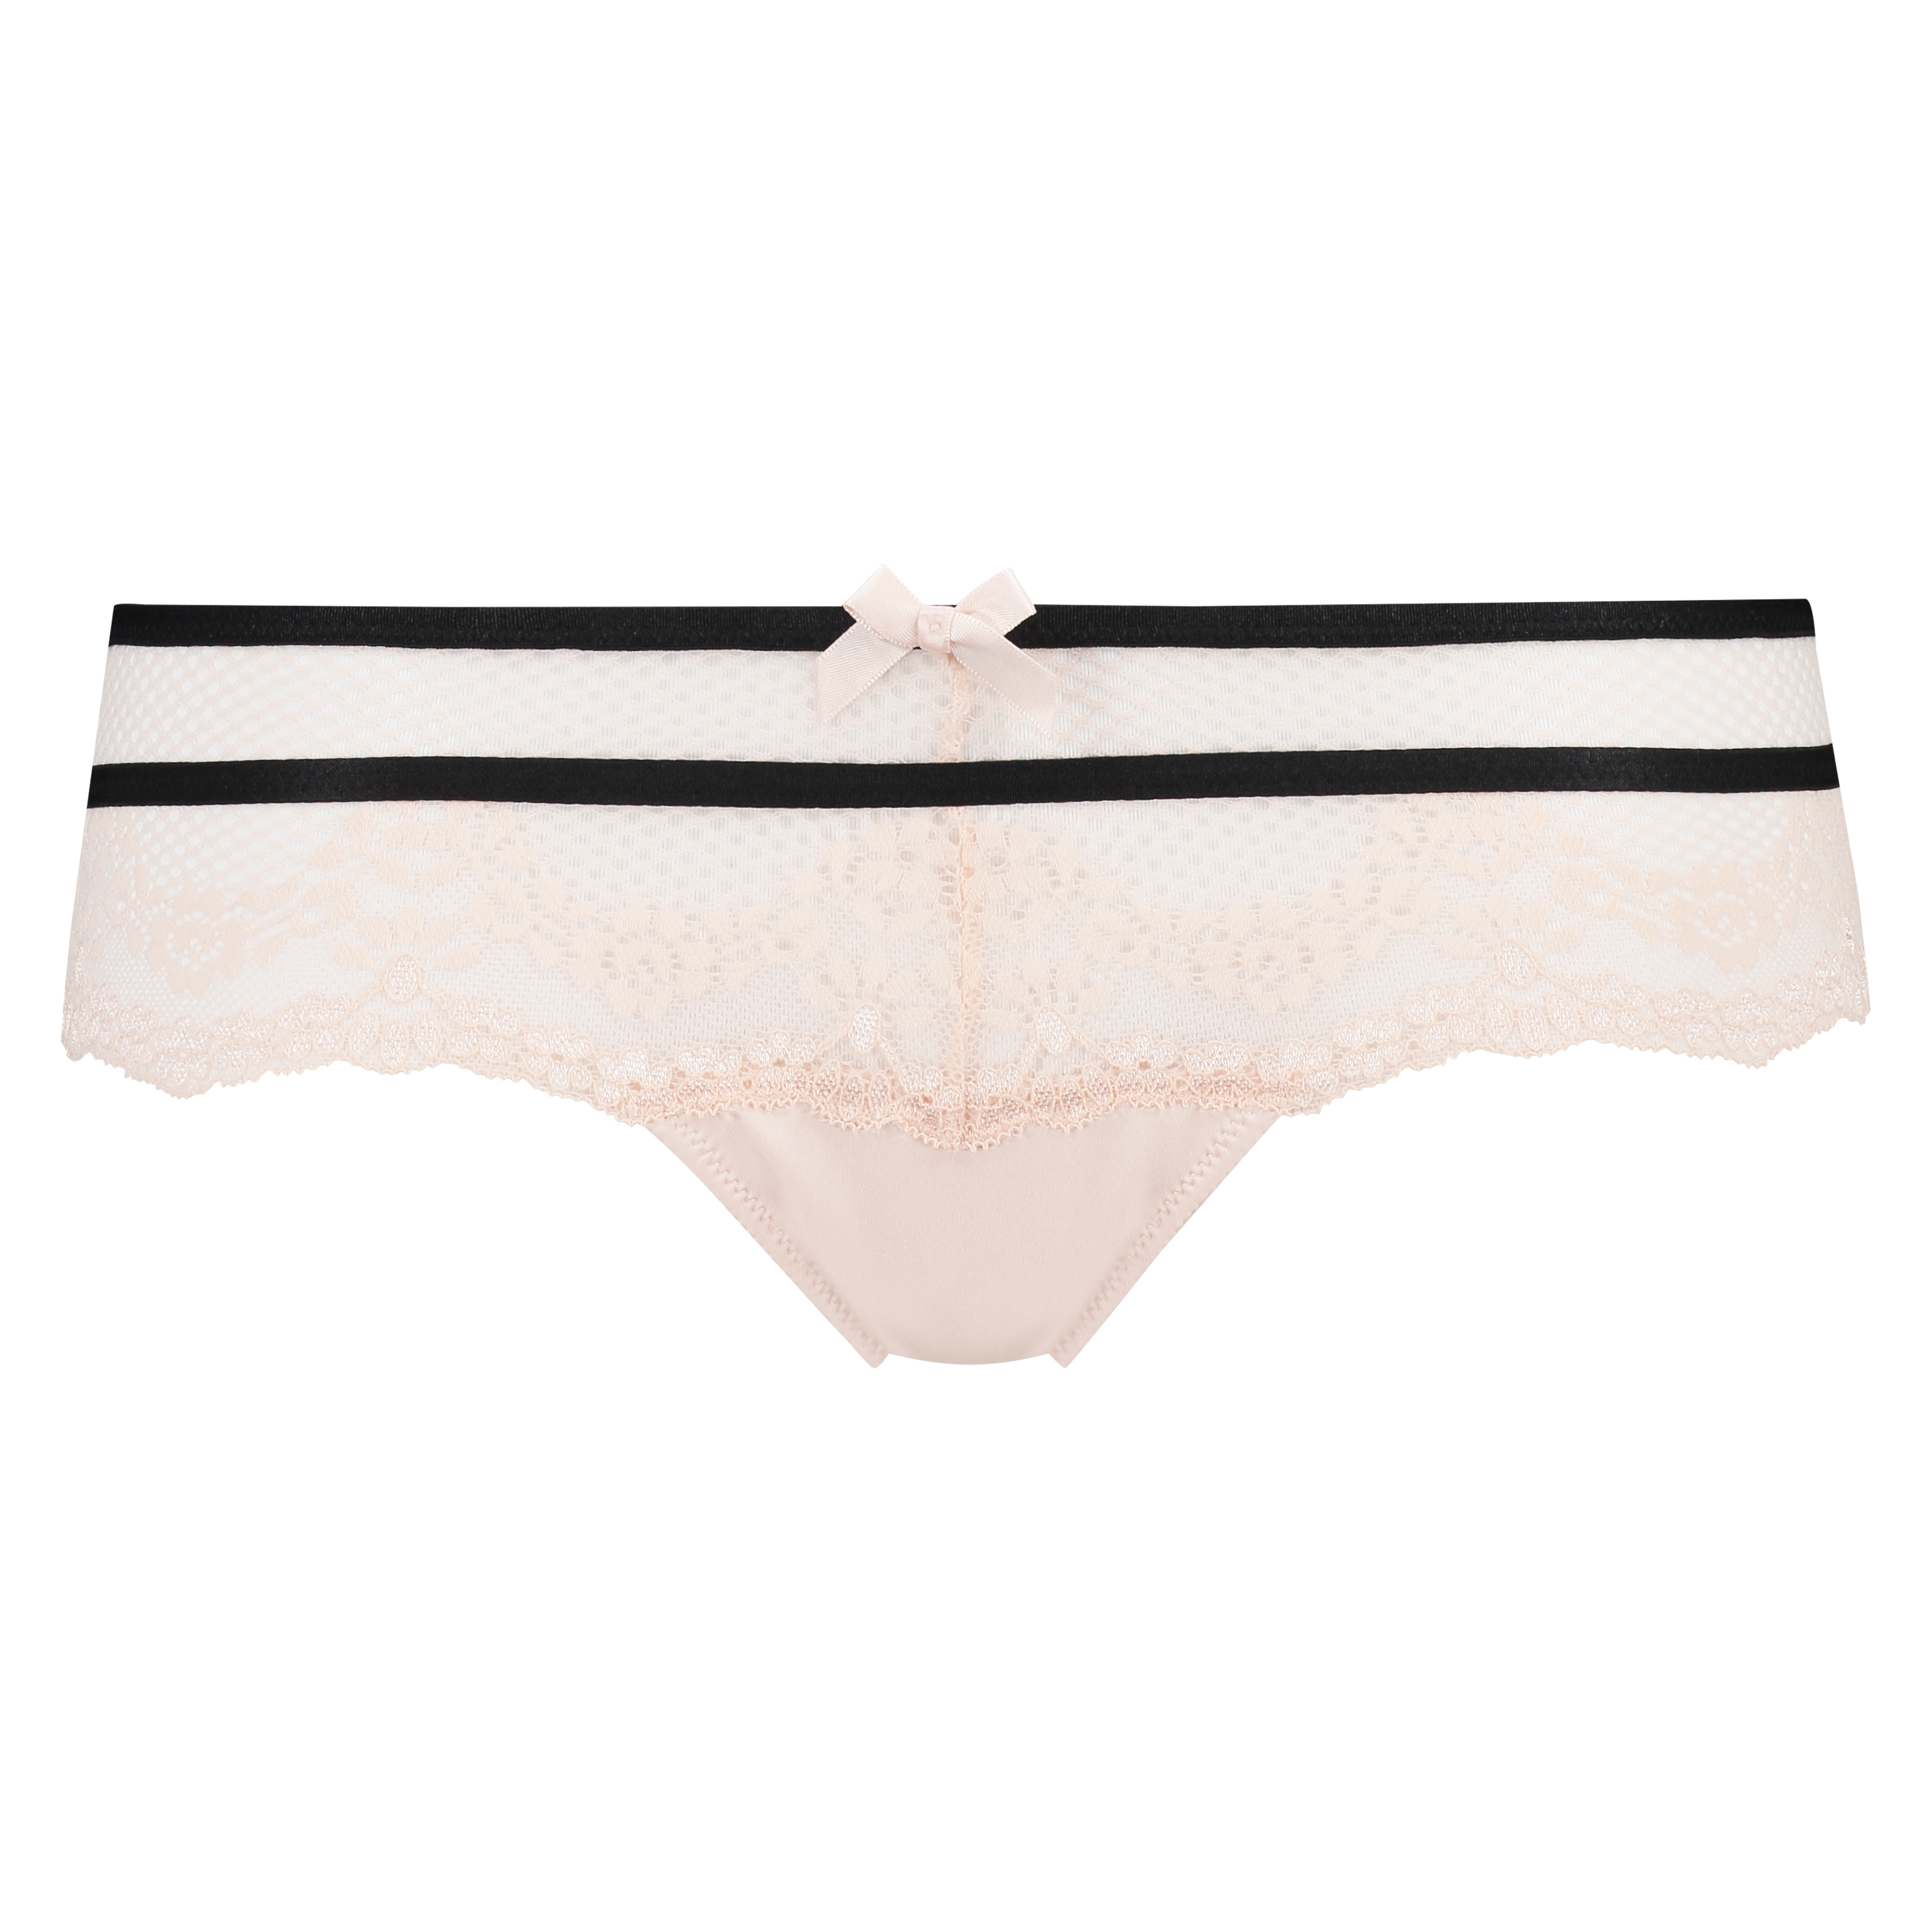 Boxerstring Nell, Roze, main